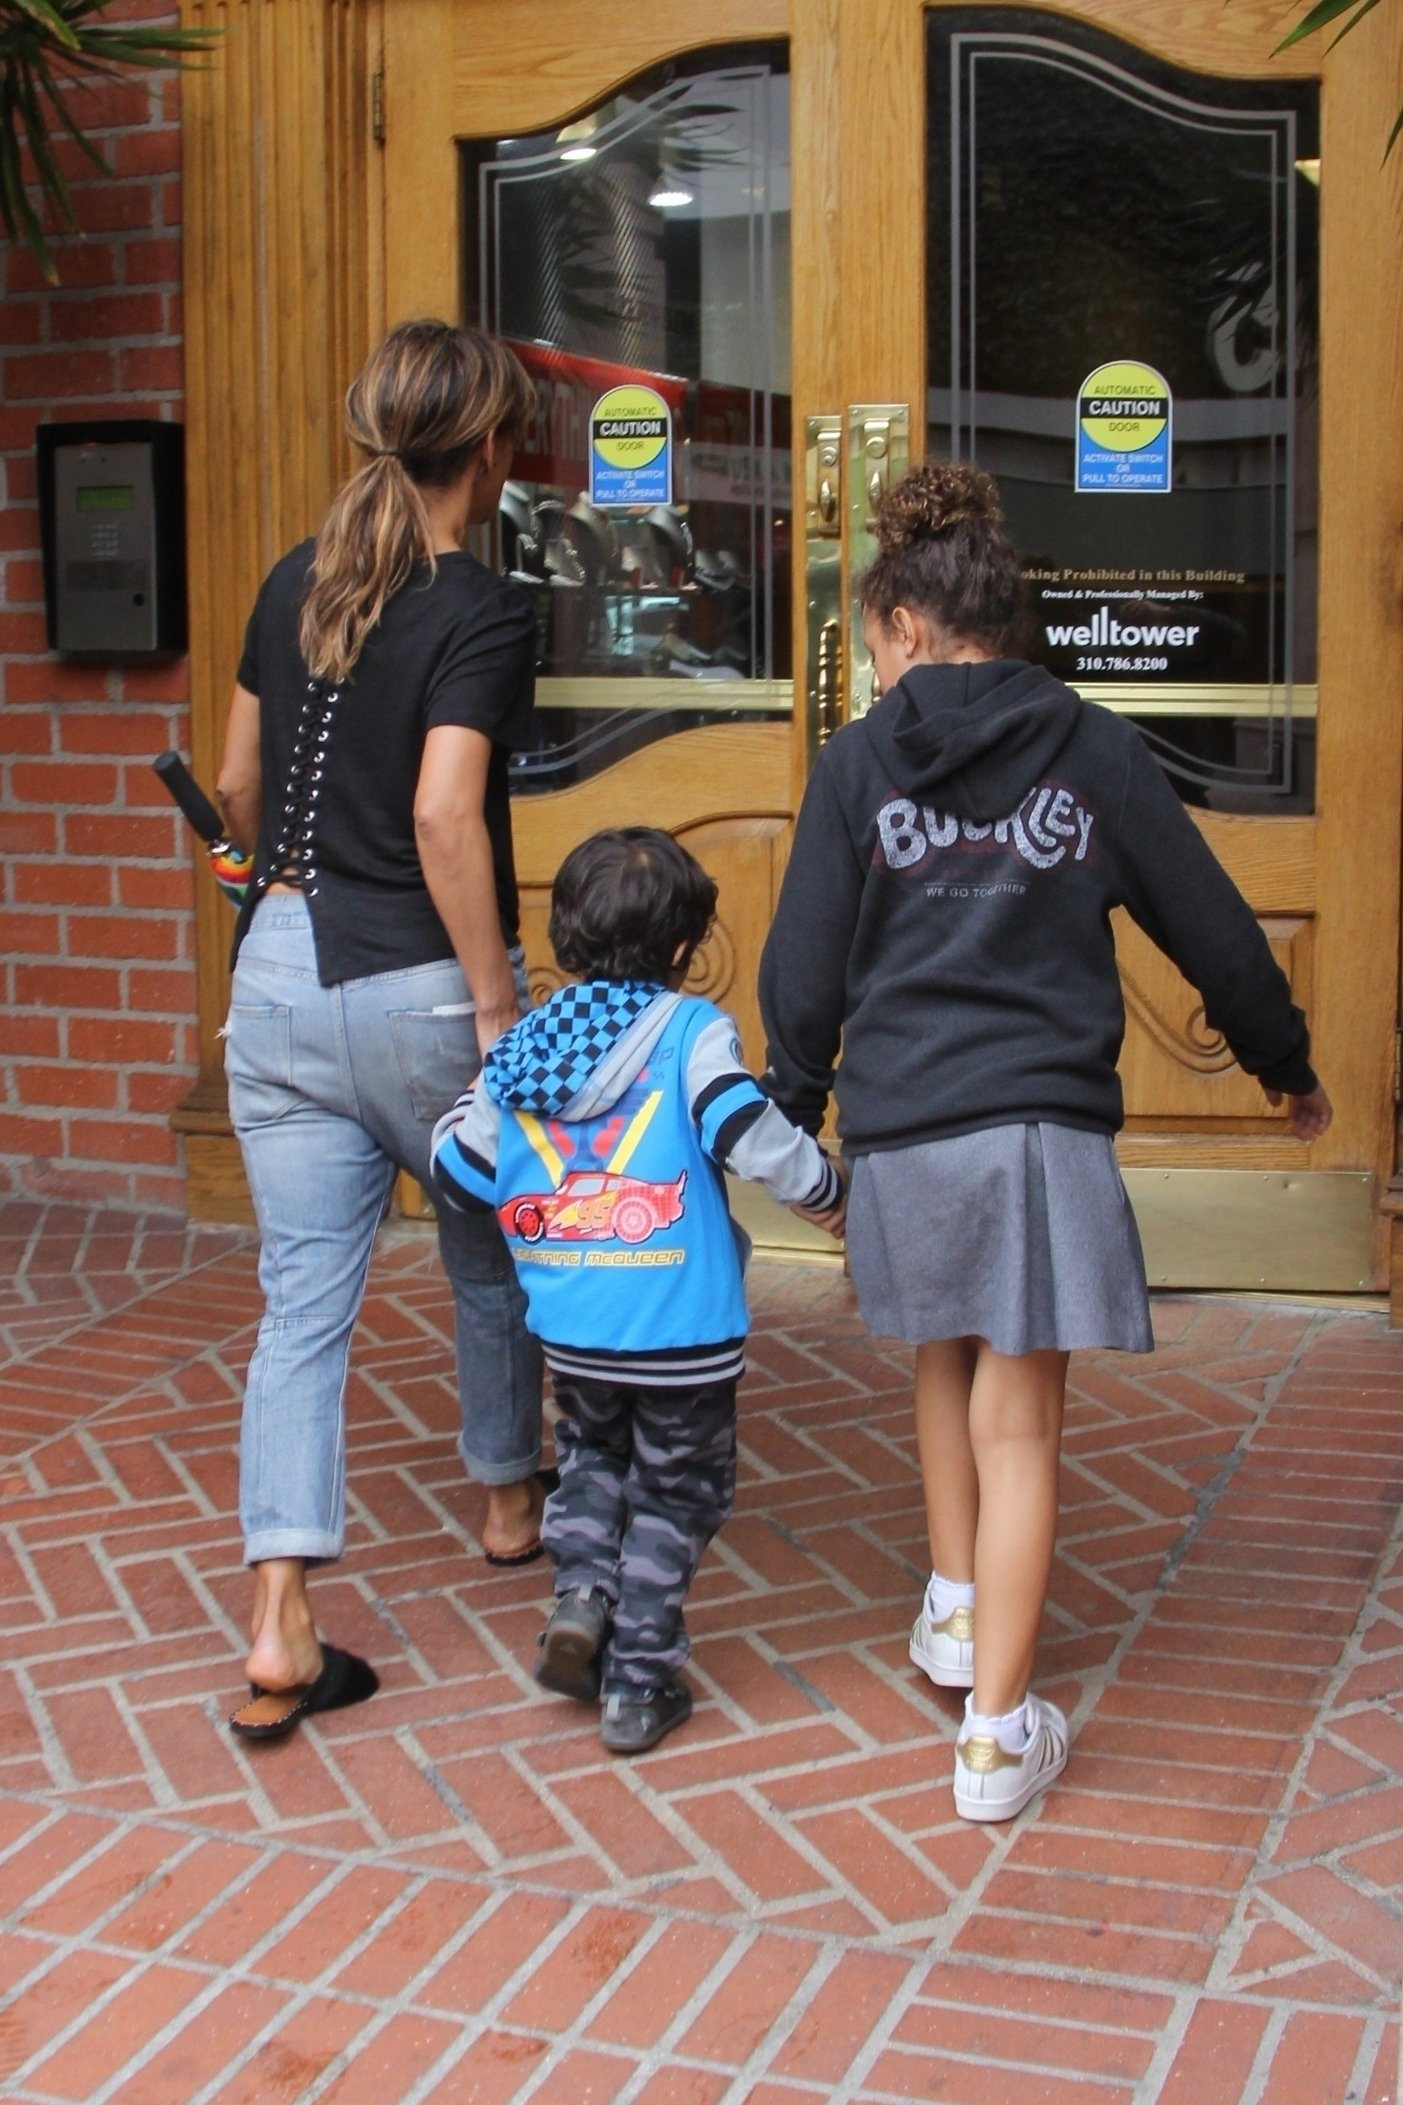 Beverly Hills, CA  - Actress Halle Berry takes her kids Nahla and Maceo to the dentist this afternoon for a routine check up.  Halle carried an umbrella for the expected rain to come down throughout the day.  Pictured: Halle Berry, Nahla Aubry, Maceo Martinez  BACKGRID USA 13 MARCH 2018, Image: 365956344, License: Rights-managed, Restrictions: , Model Release: no, Credit line: Profimedia, AKM-GSI